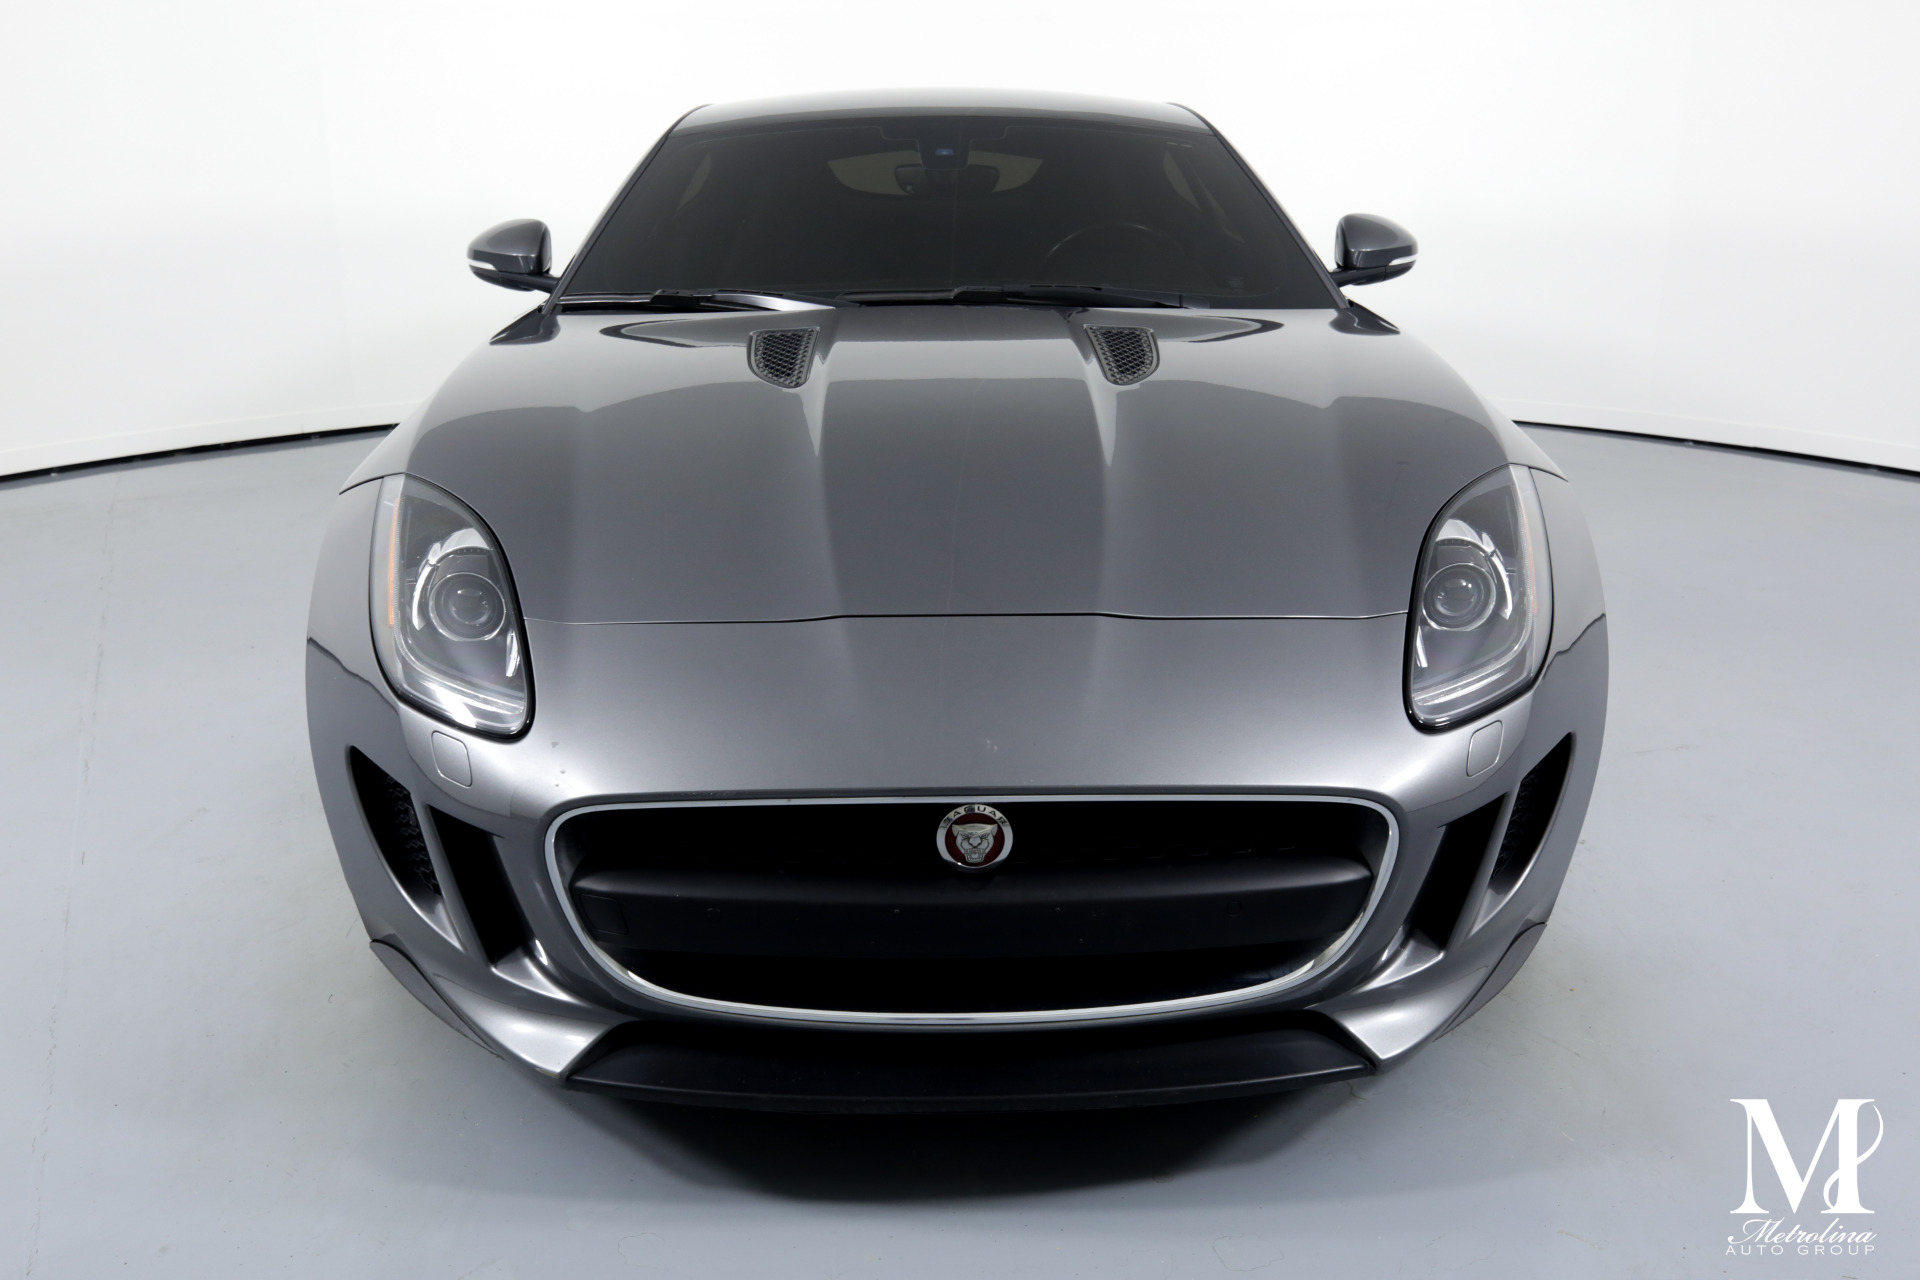 Used 2016 Jaguar F-TYPE for sale $29,996 at Metrolina Auto Group in Charlotte NC 28217 - 3